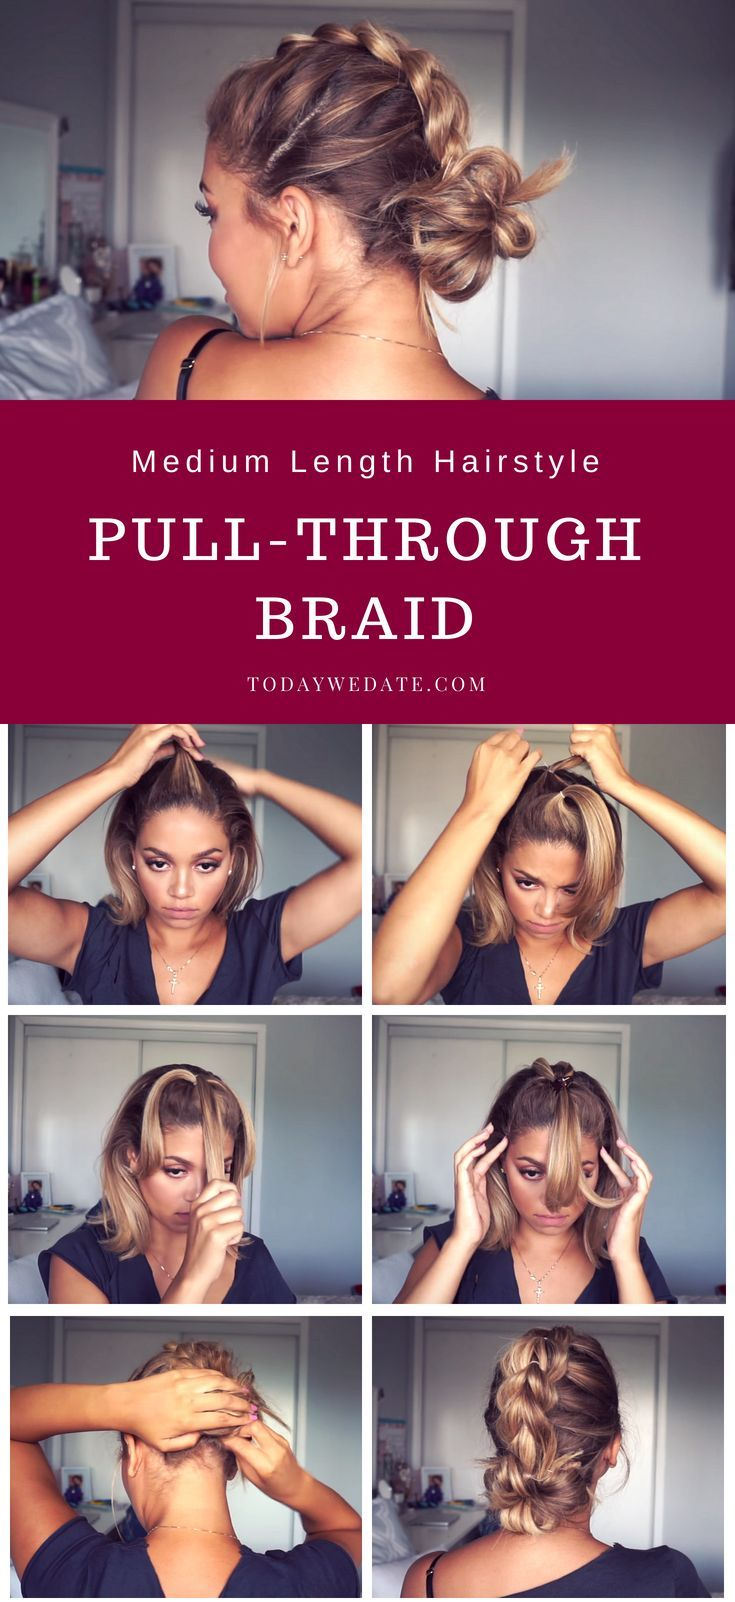 3 Super Easy Ways To Style Your Shoulder Length Hair Today Hairstyles For Medium Length Hair Tutorial Medium Length Hair Styles Braids For Medium Length Hair